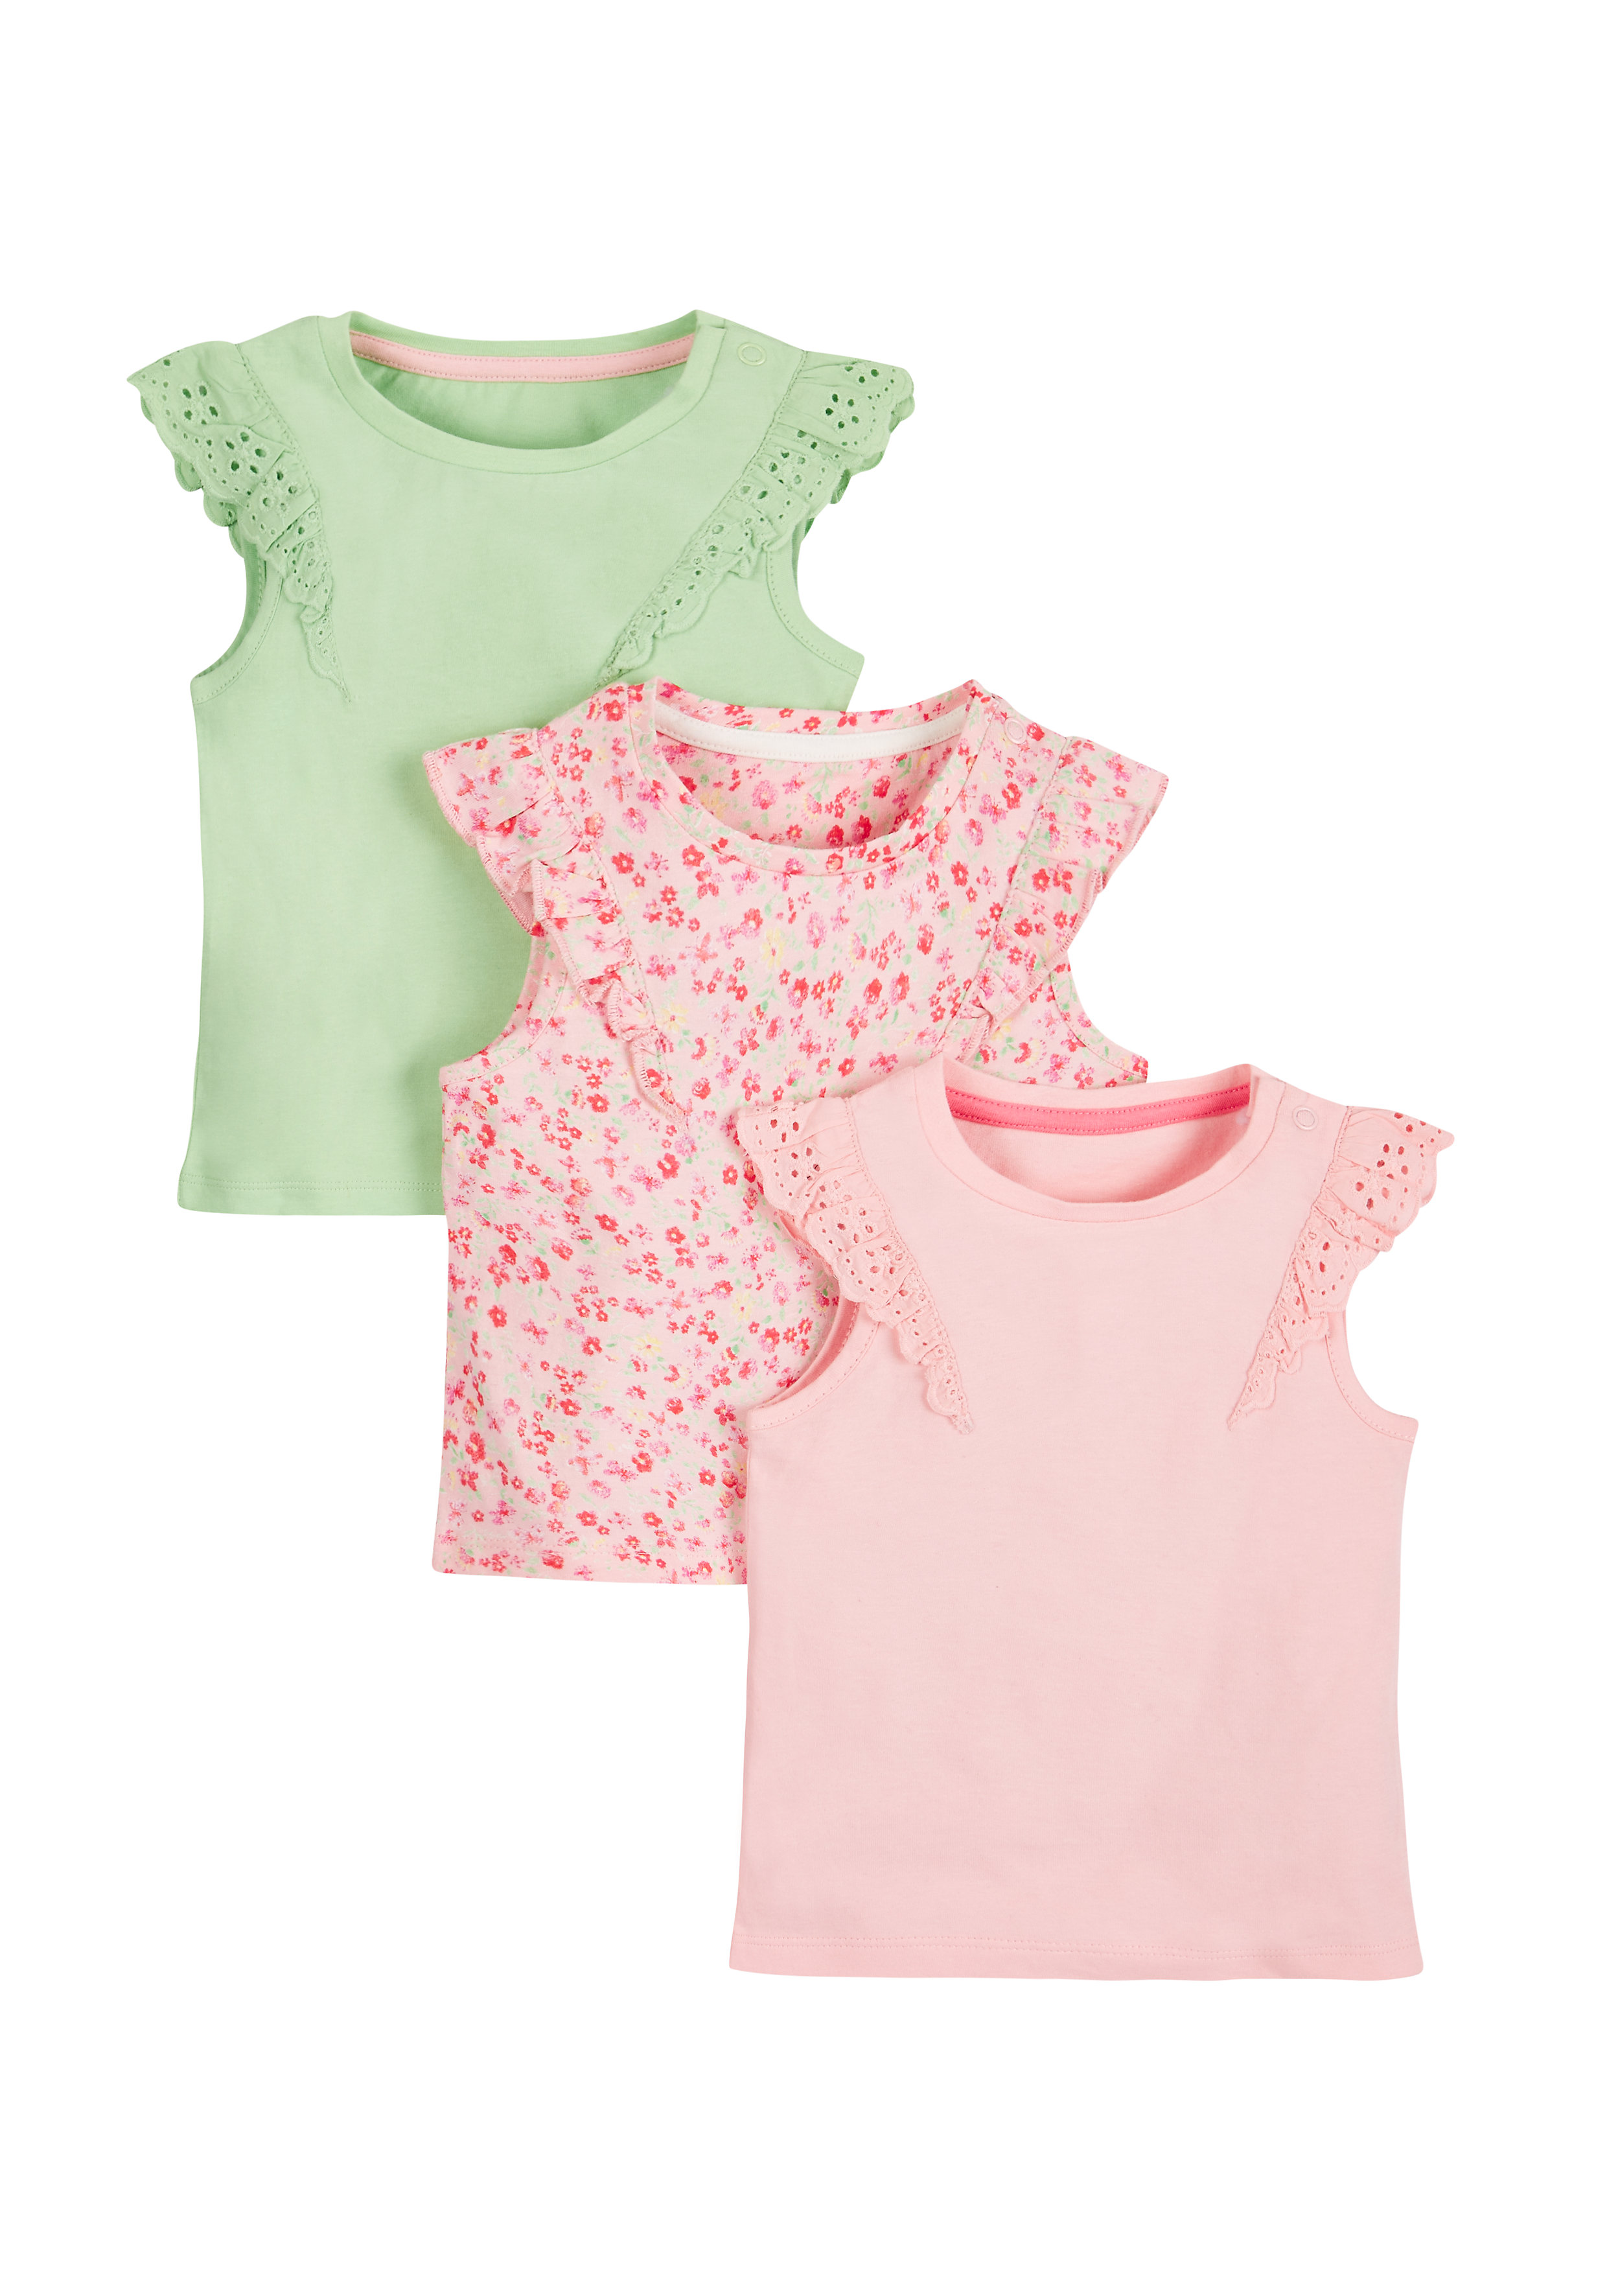 Mothercare | Girls Plain And Floral T-Shirts - Pack Of 3 - Multicolor